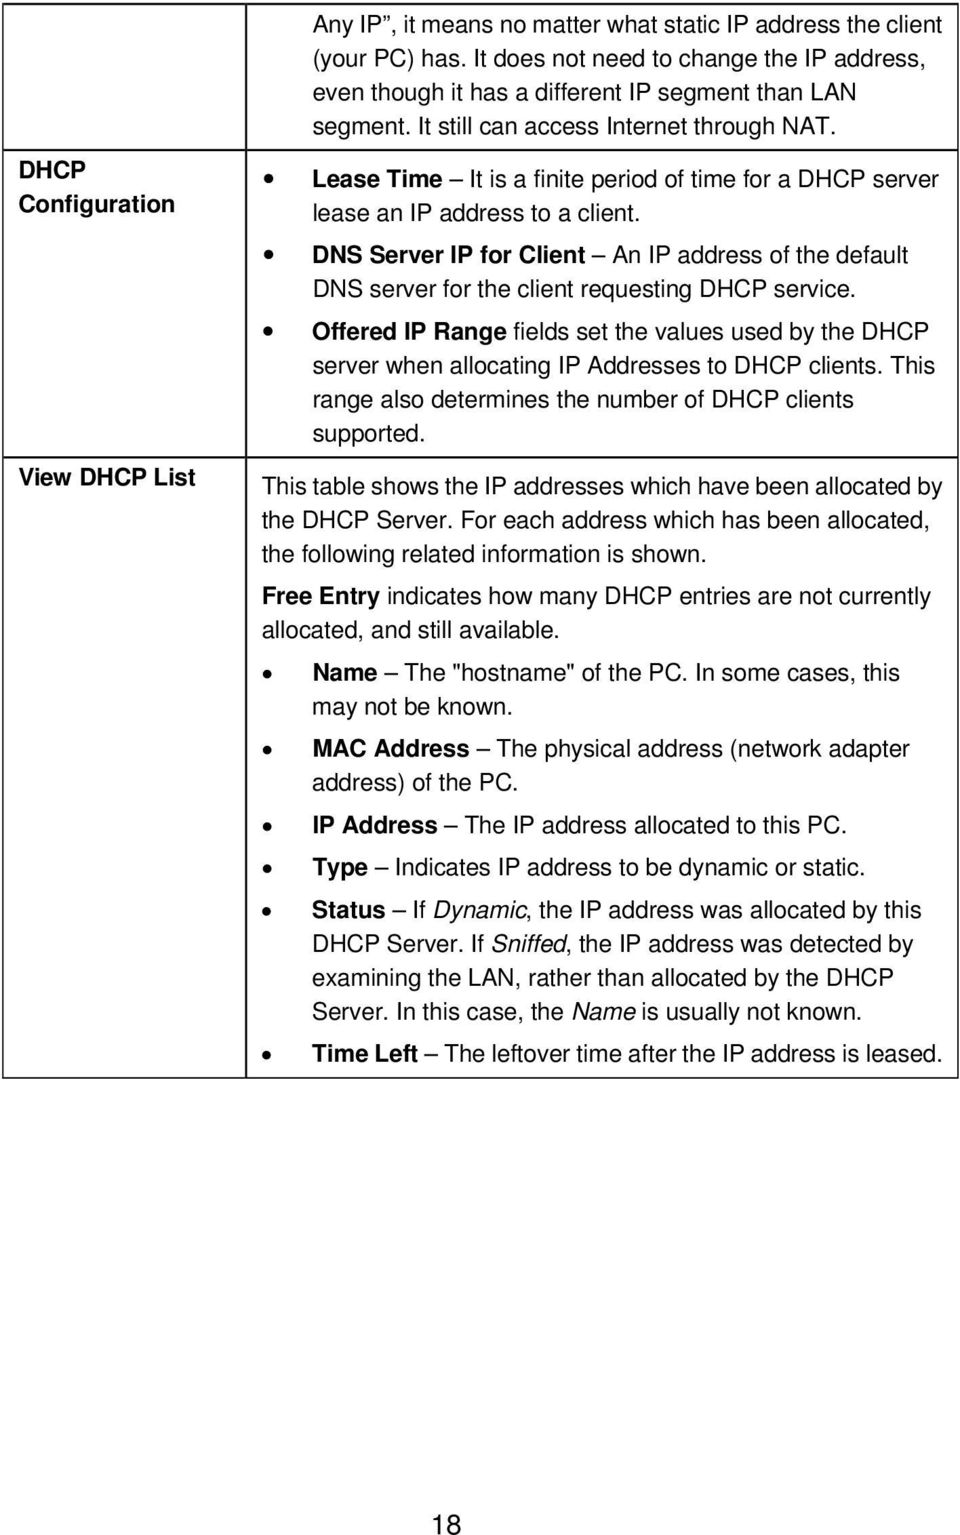 Lease Time It is a finite period of time for a DHCP server lease an IP address to a client. DNS Server IP for Client An IP address of the default DNS server for the client requesting DHCP service.